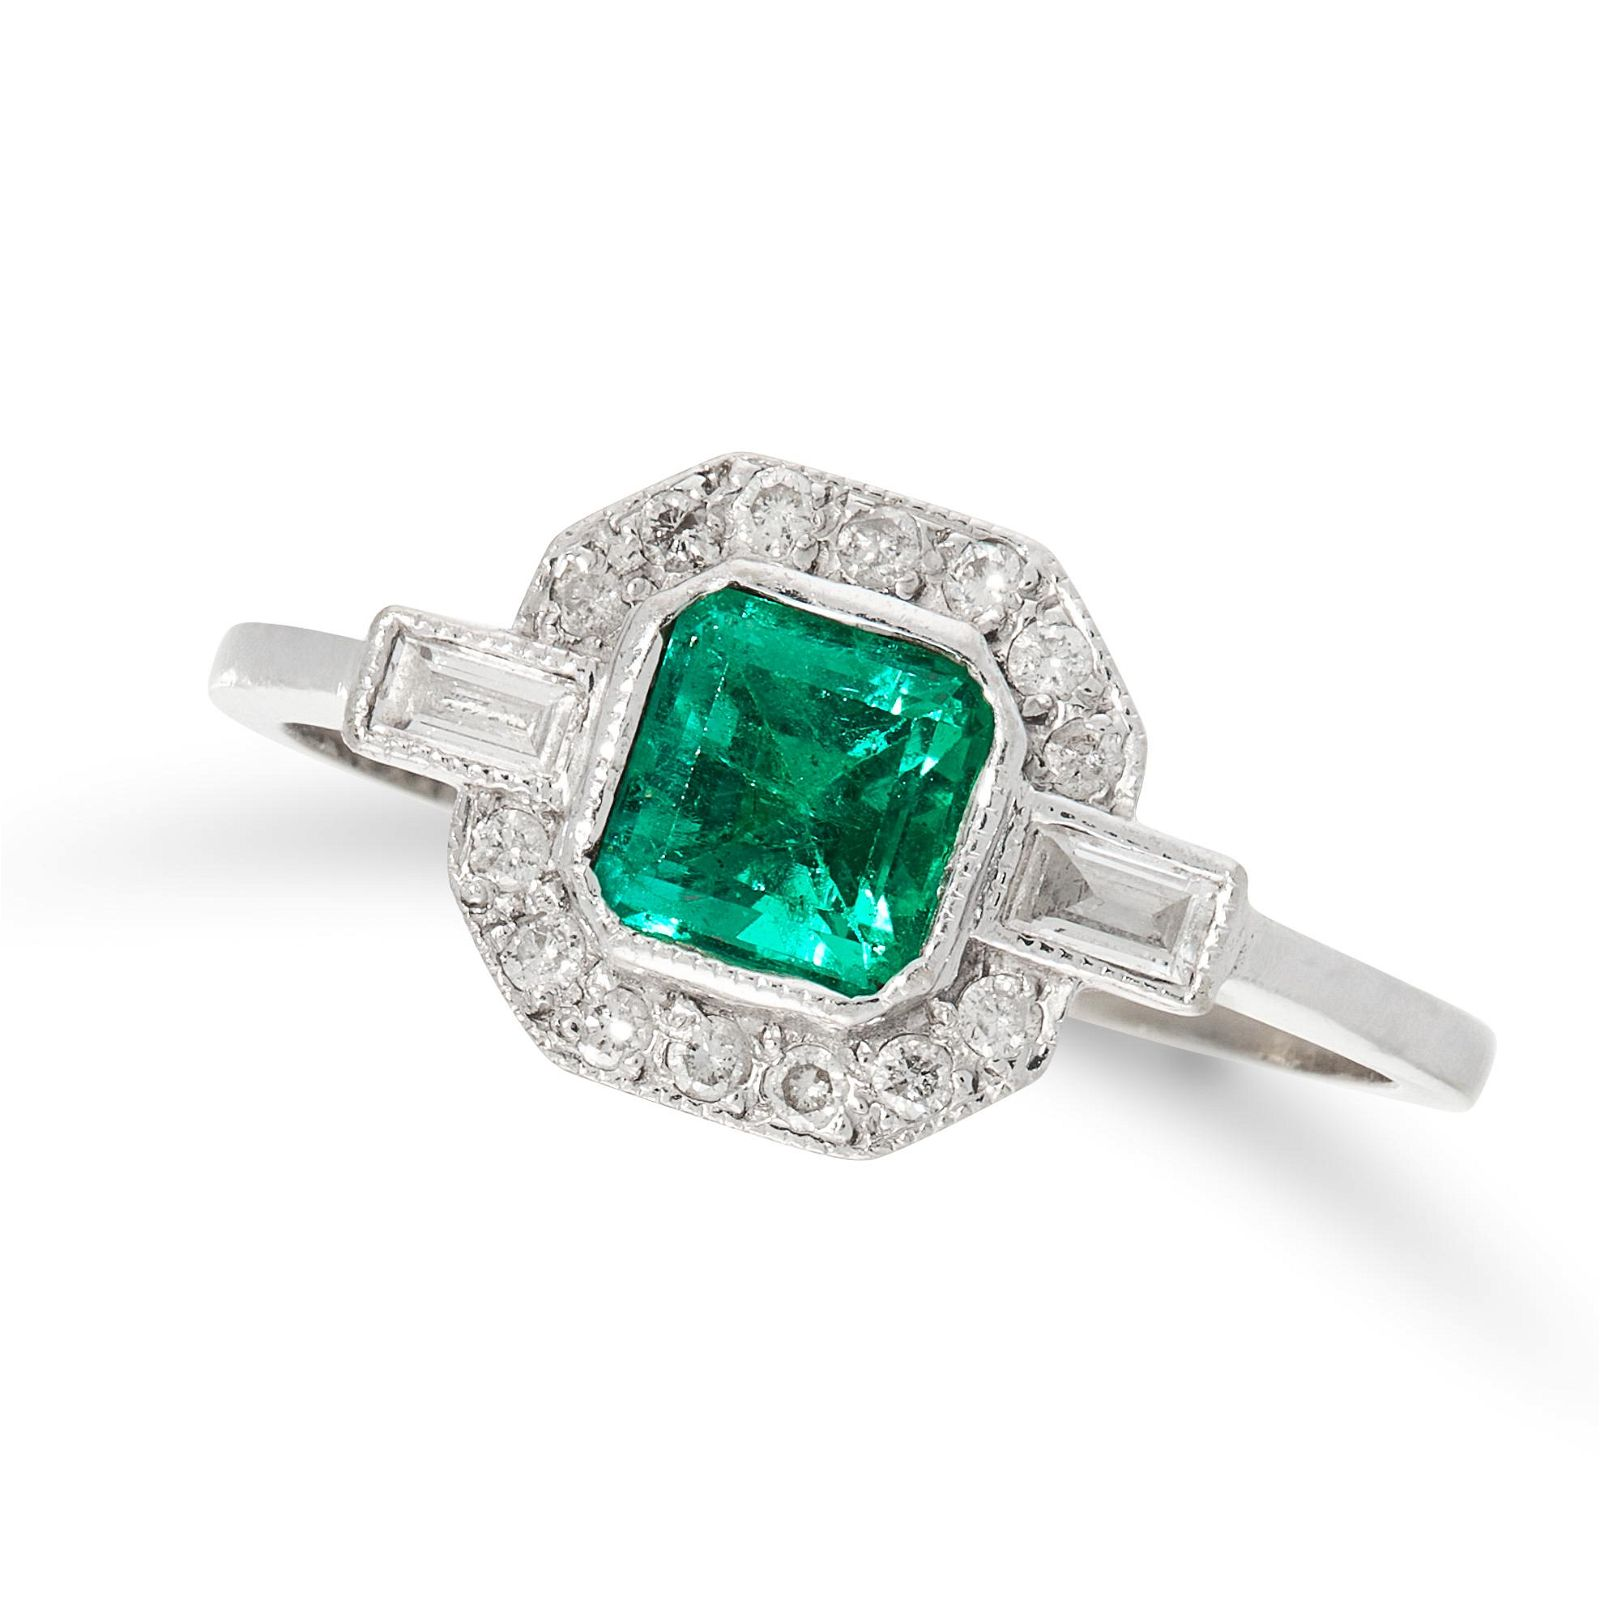 AN ART DECO EMERALD AND DIAMOND DRESS RING in 18ct